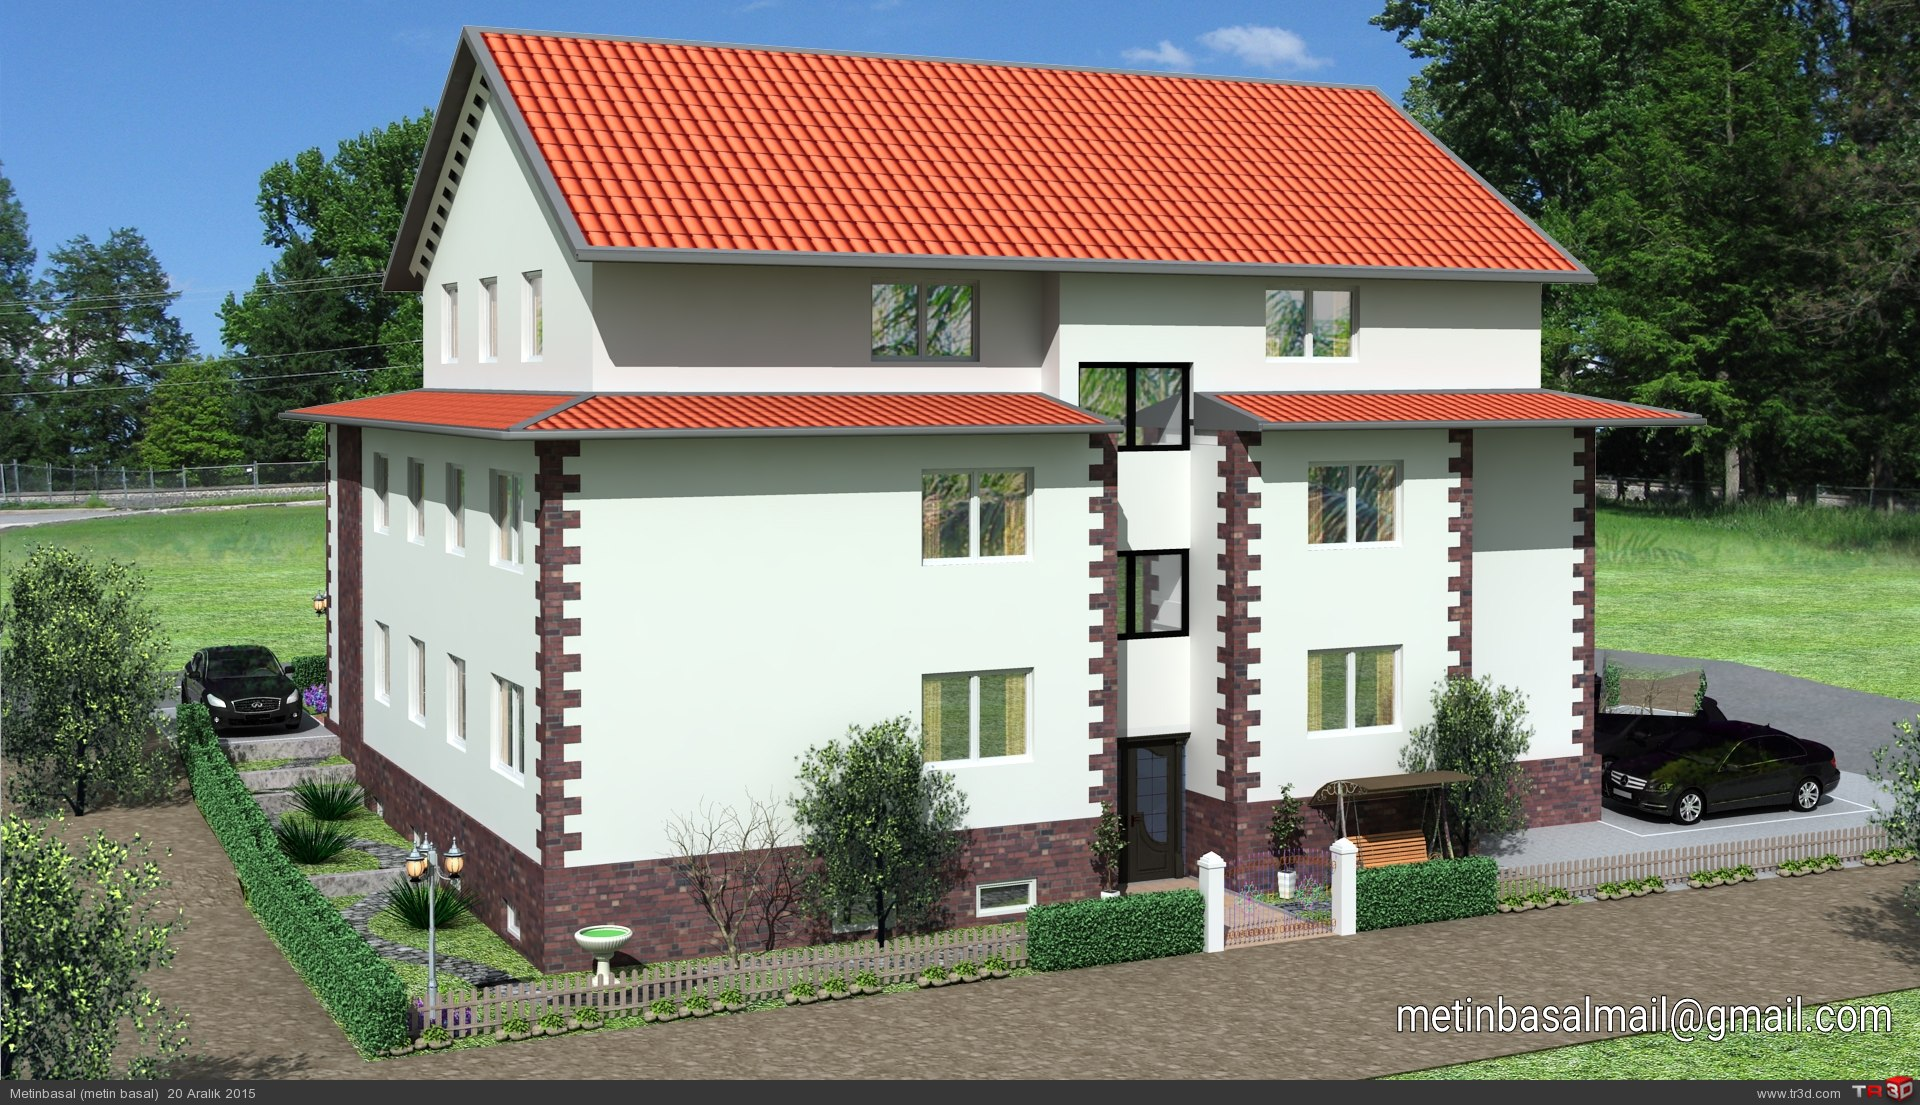 Germany villa modeling and design 1